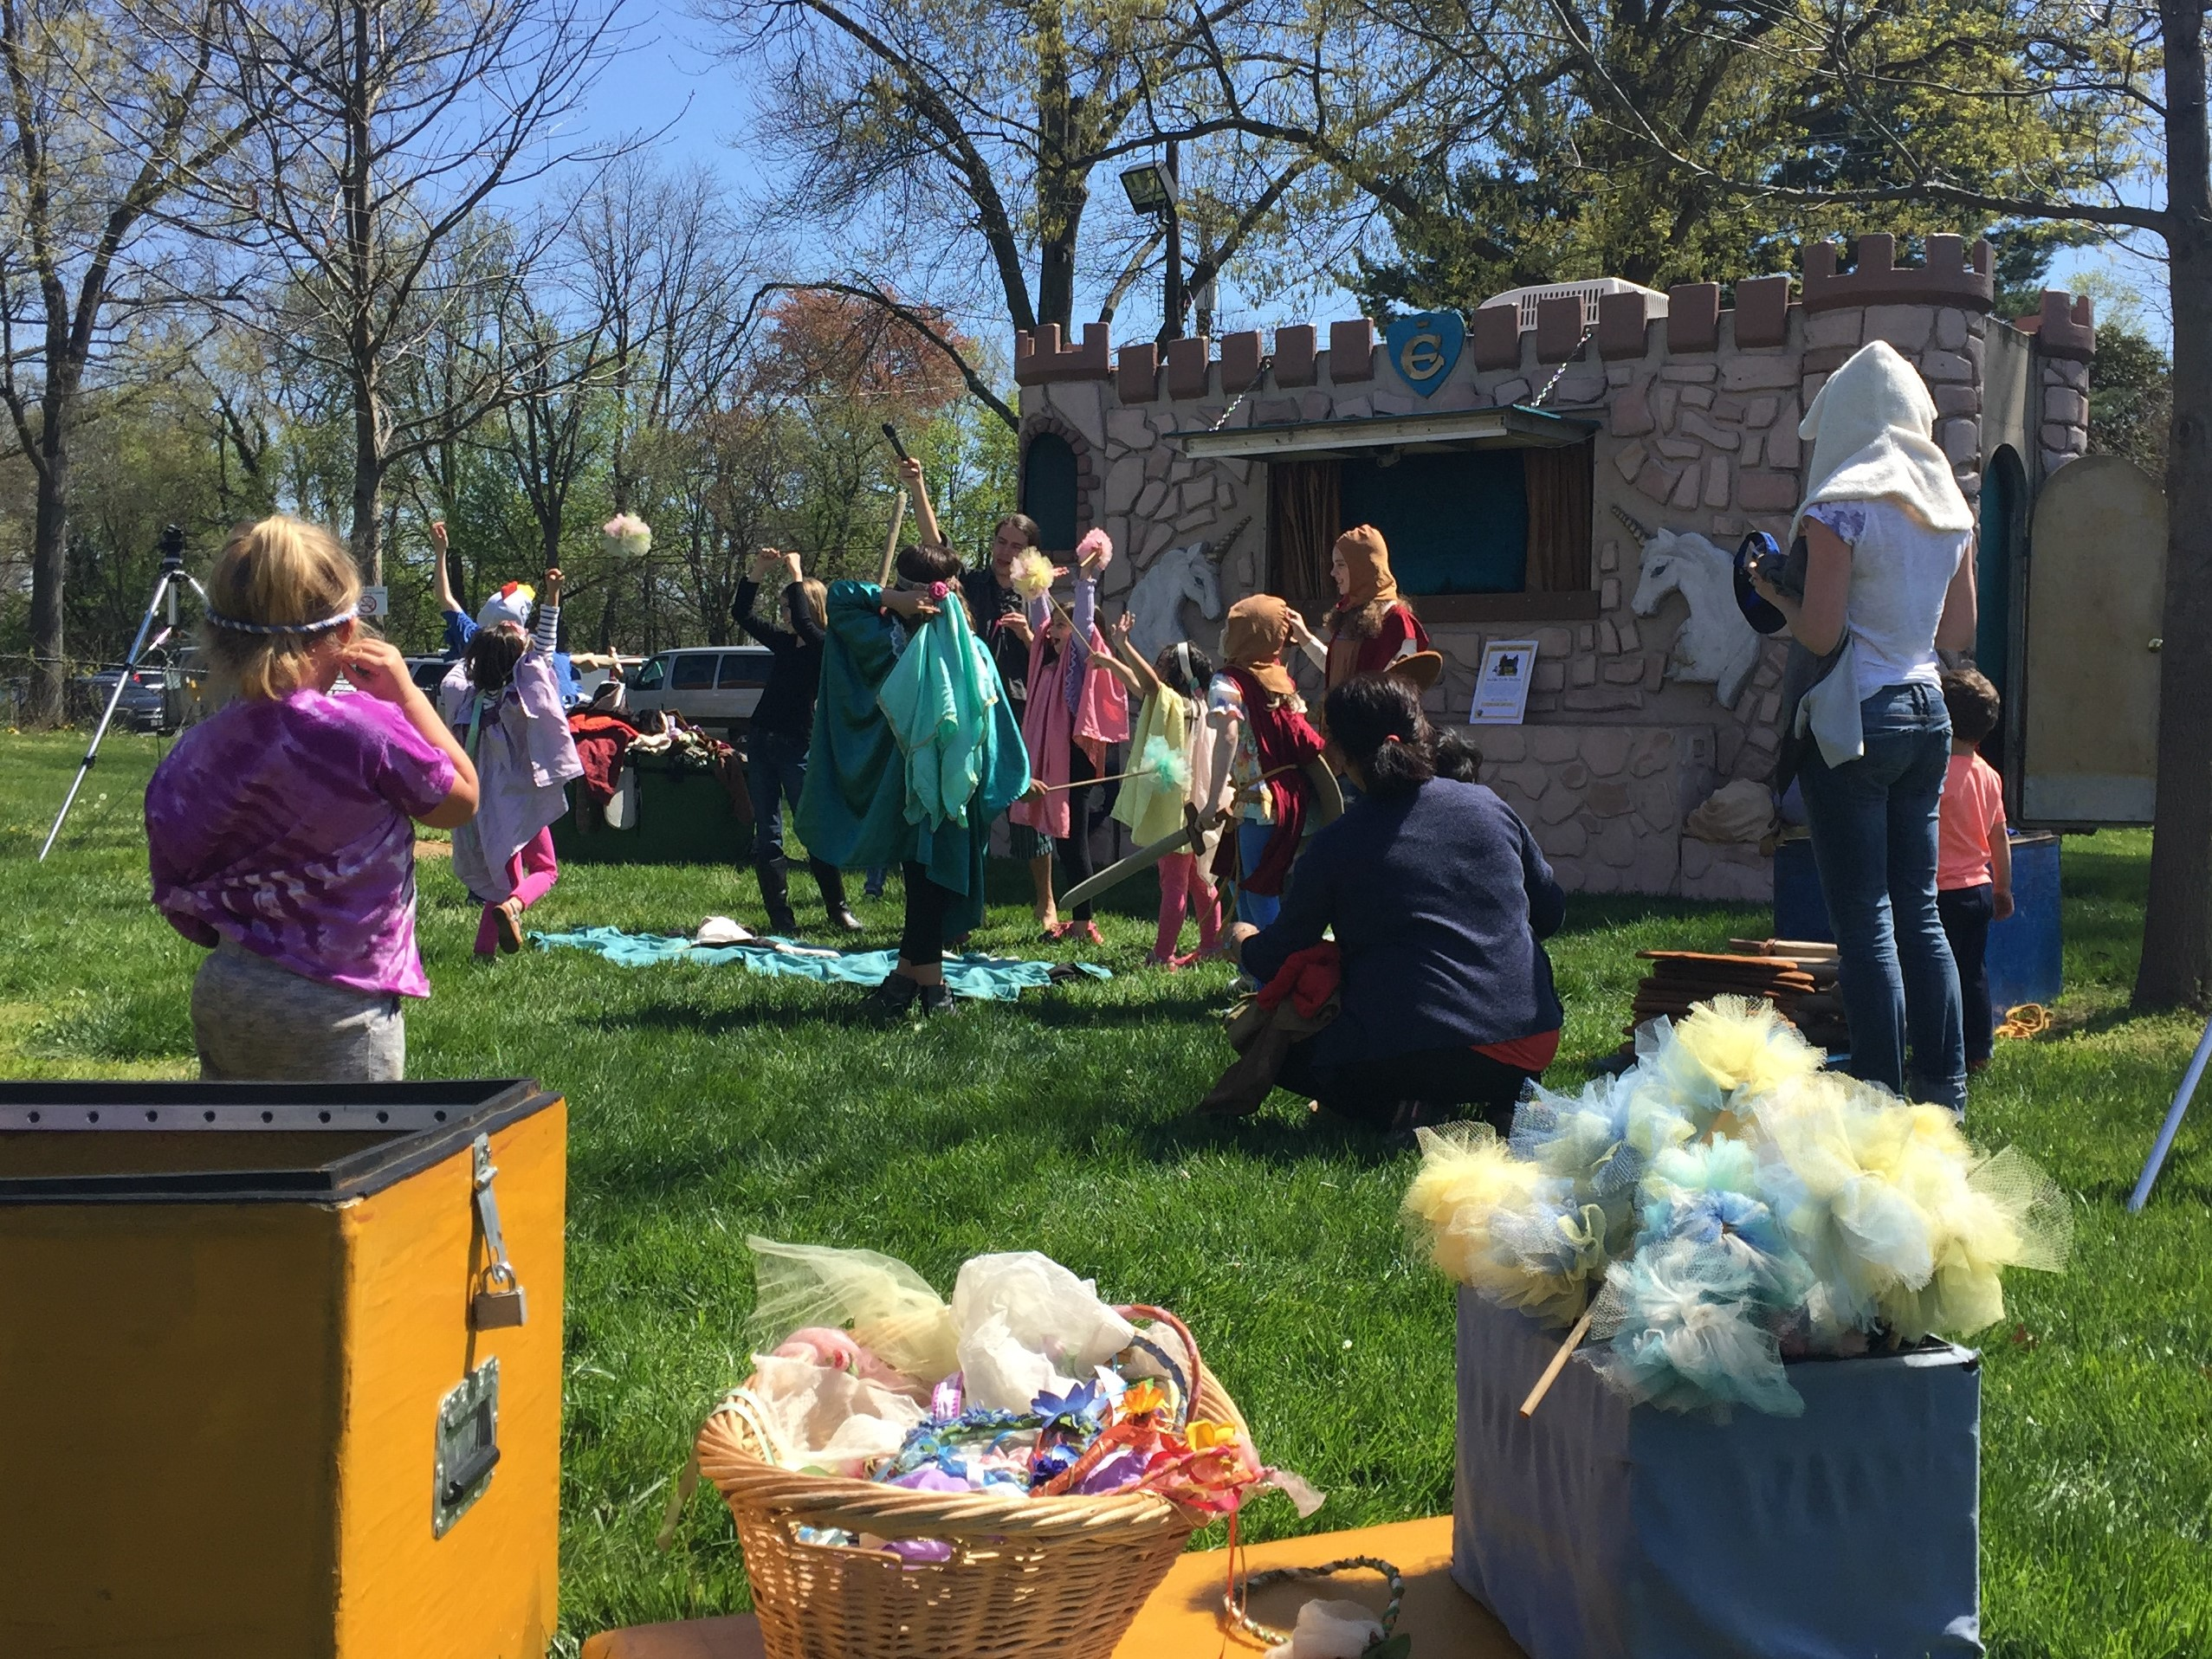 Fun for the whole family at Sugarloaf Crafts Festival!